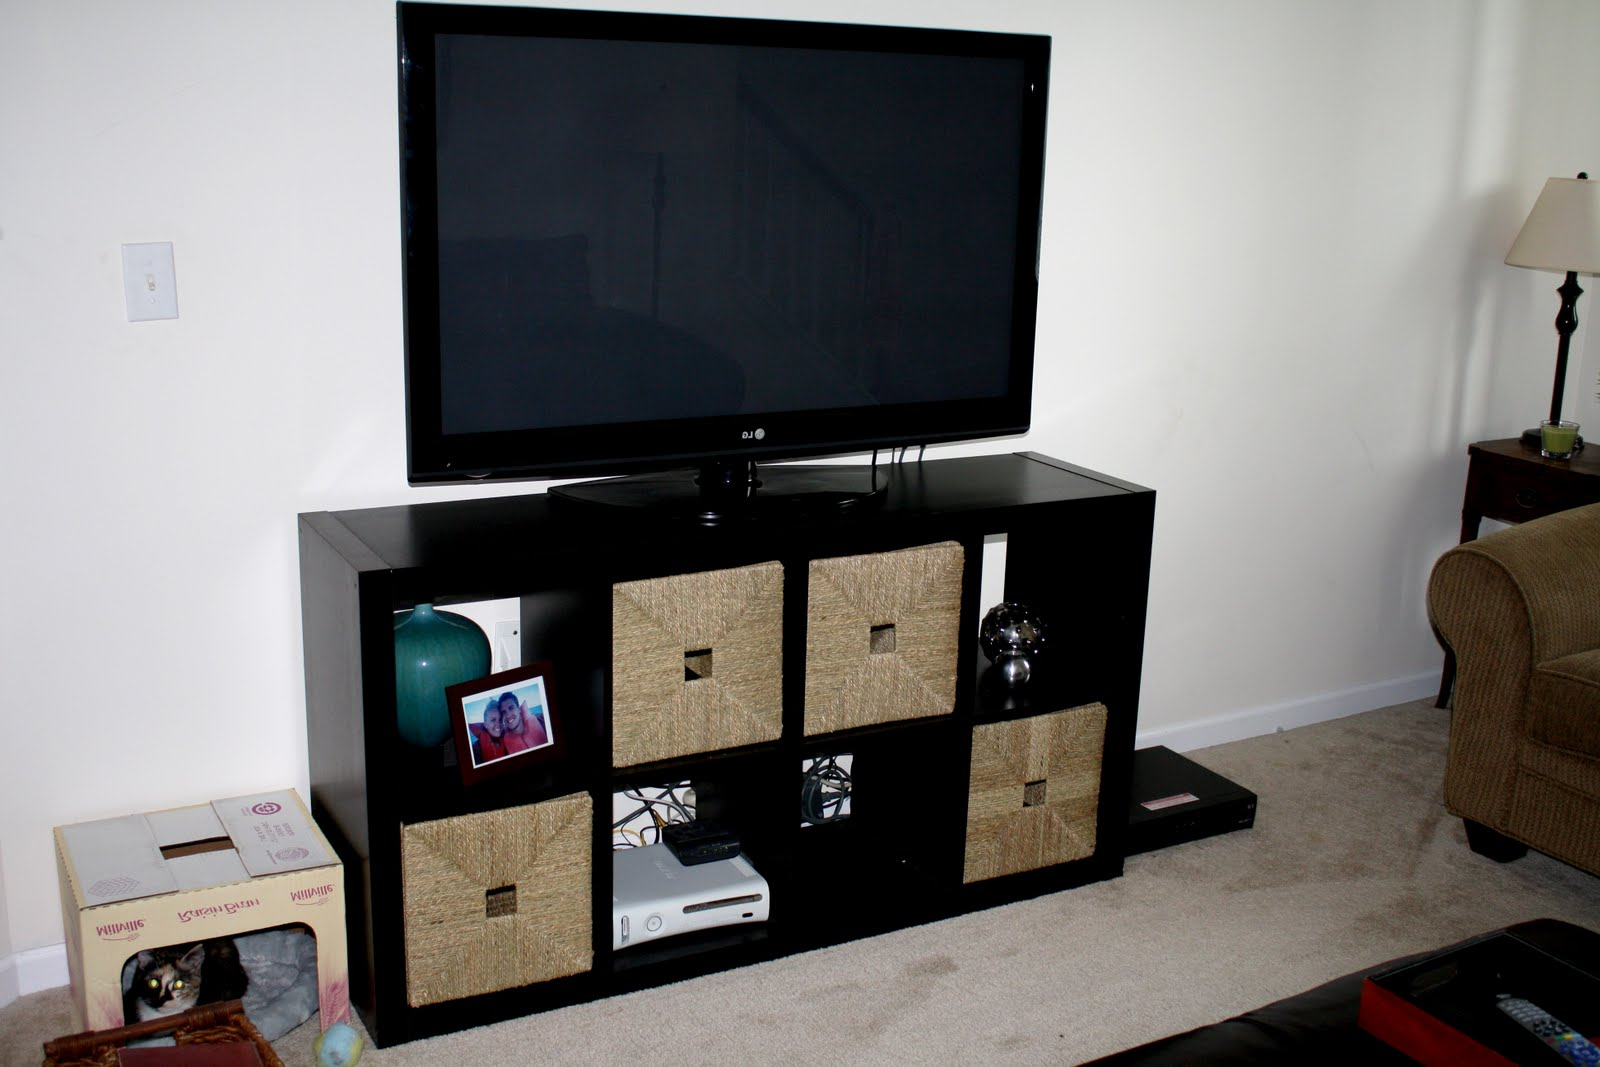 Favorite Tv Stands Bookshelf Combo Pertaining To Tv Stand Bookshelf Combo Ikea – Buyouapp (View 7 of 20)